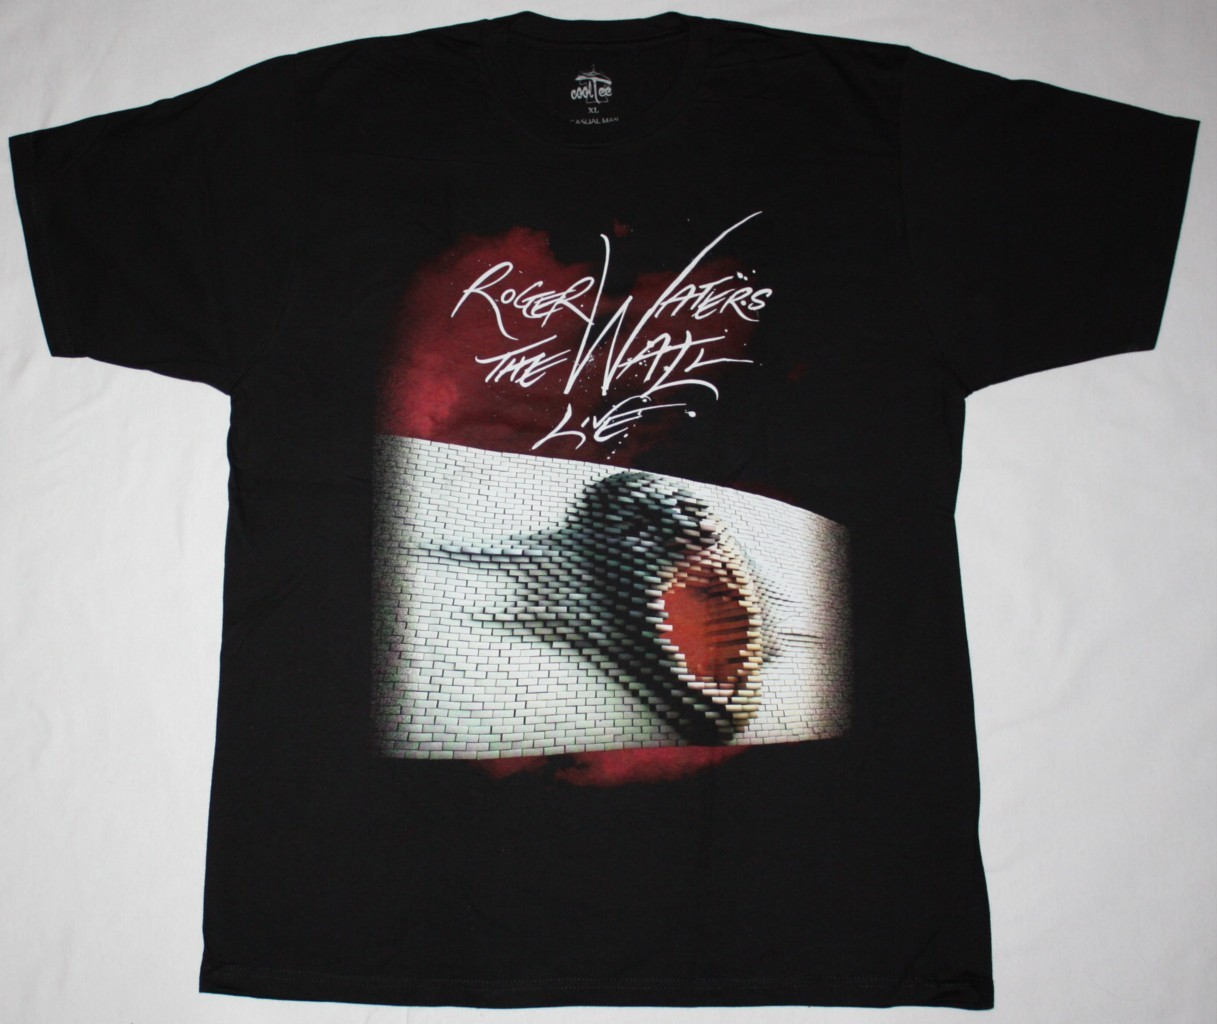 ROGER WATERS THE WALL 2013 TOUR EUROPE  NEW BLACK T-SHIRT